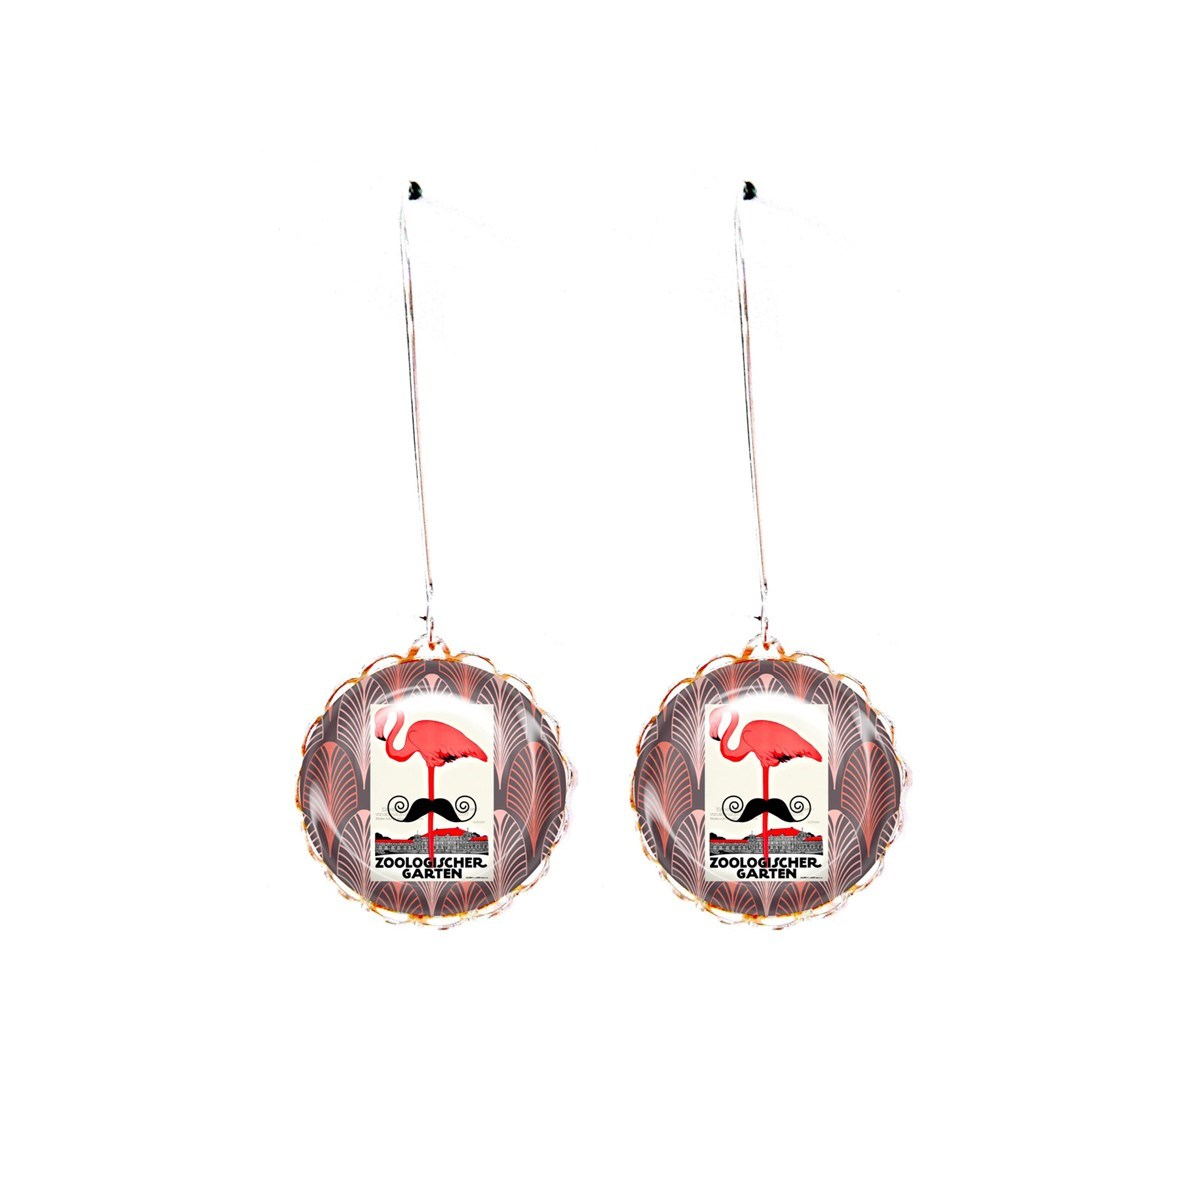 Boucles cabochons flamand rose moustache art déco - vue V2